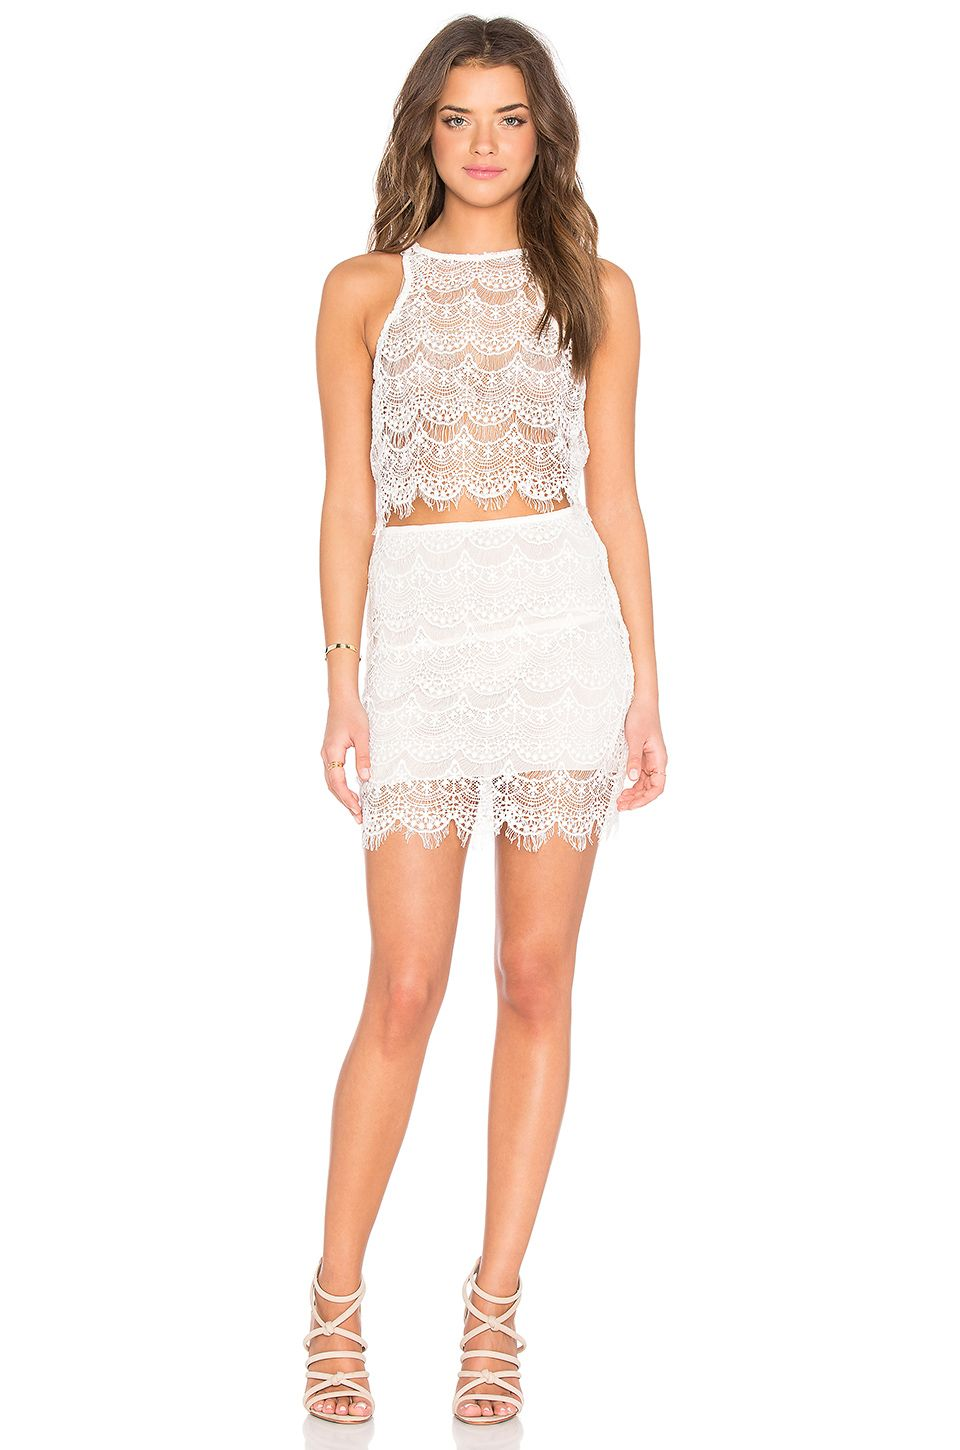 852371d24 Indah Cheryl Lace Mini Skirt in Ivory | REVOLVE | Clothes | Lace ...